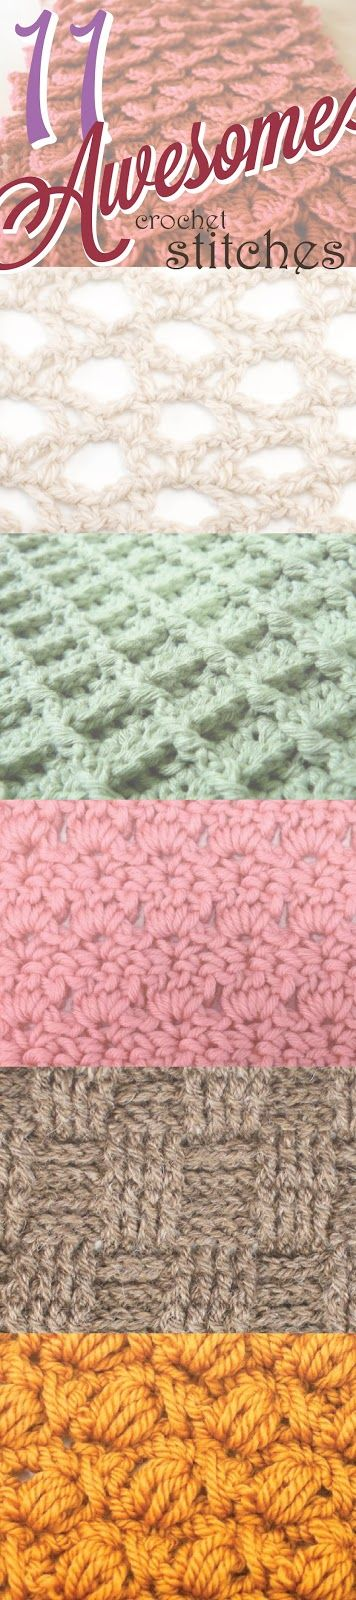 Cottontail Crochet: 11 Awesome Crochet Stitches NO VIDEO